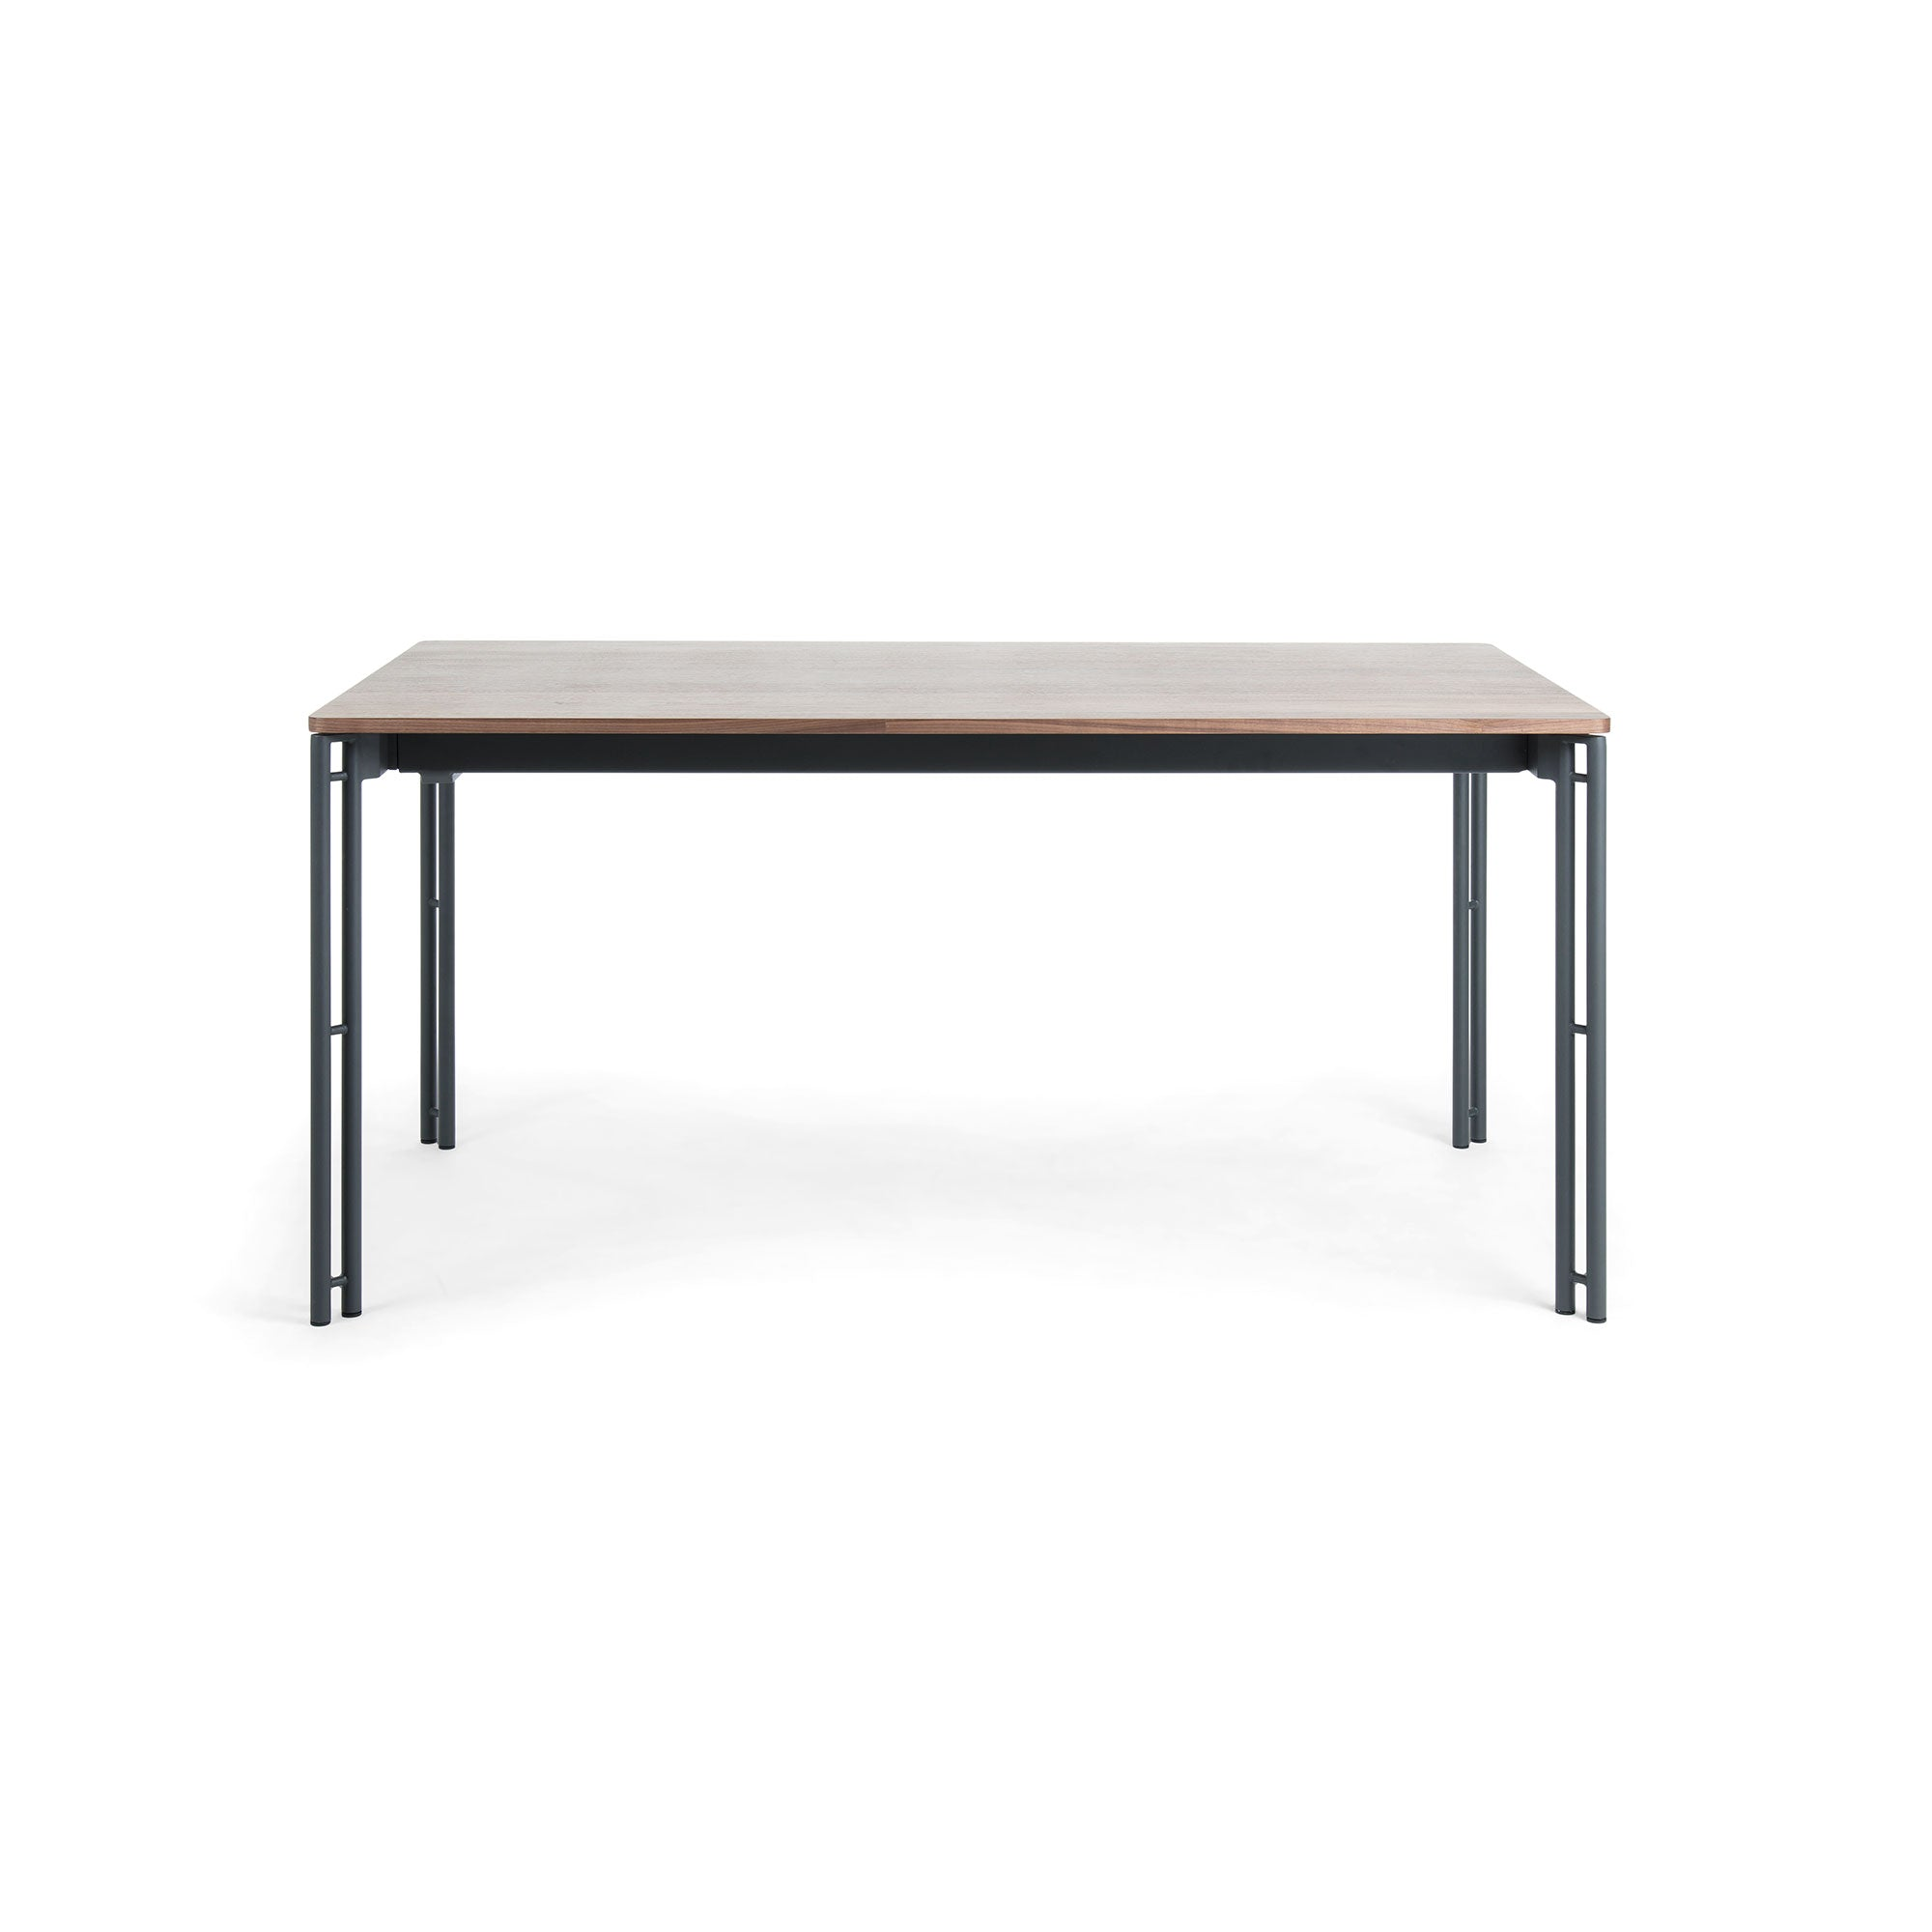 Masonette Table 160-220 graphite & walnut veneer